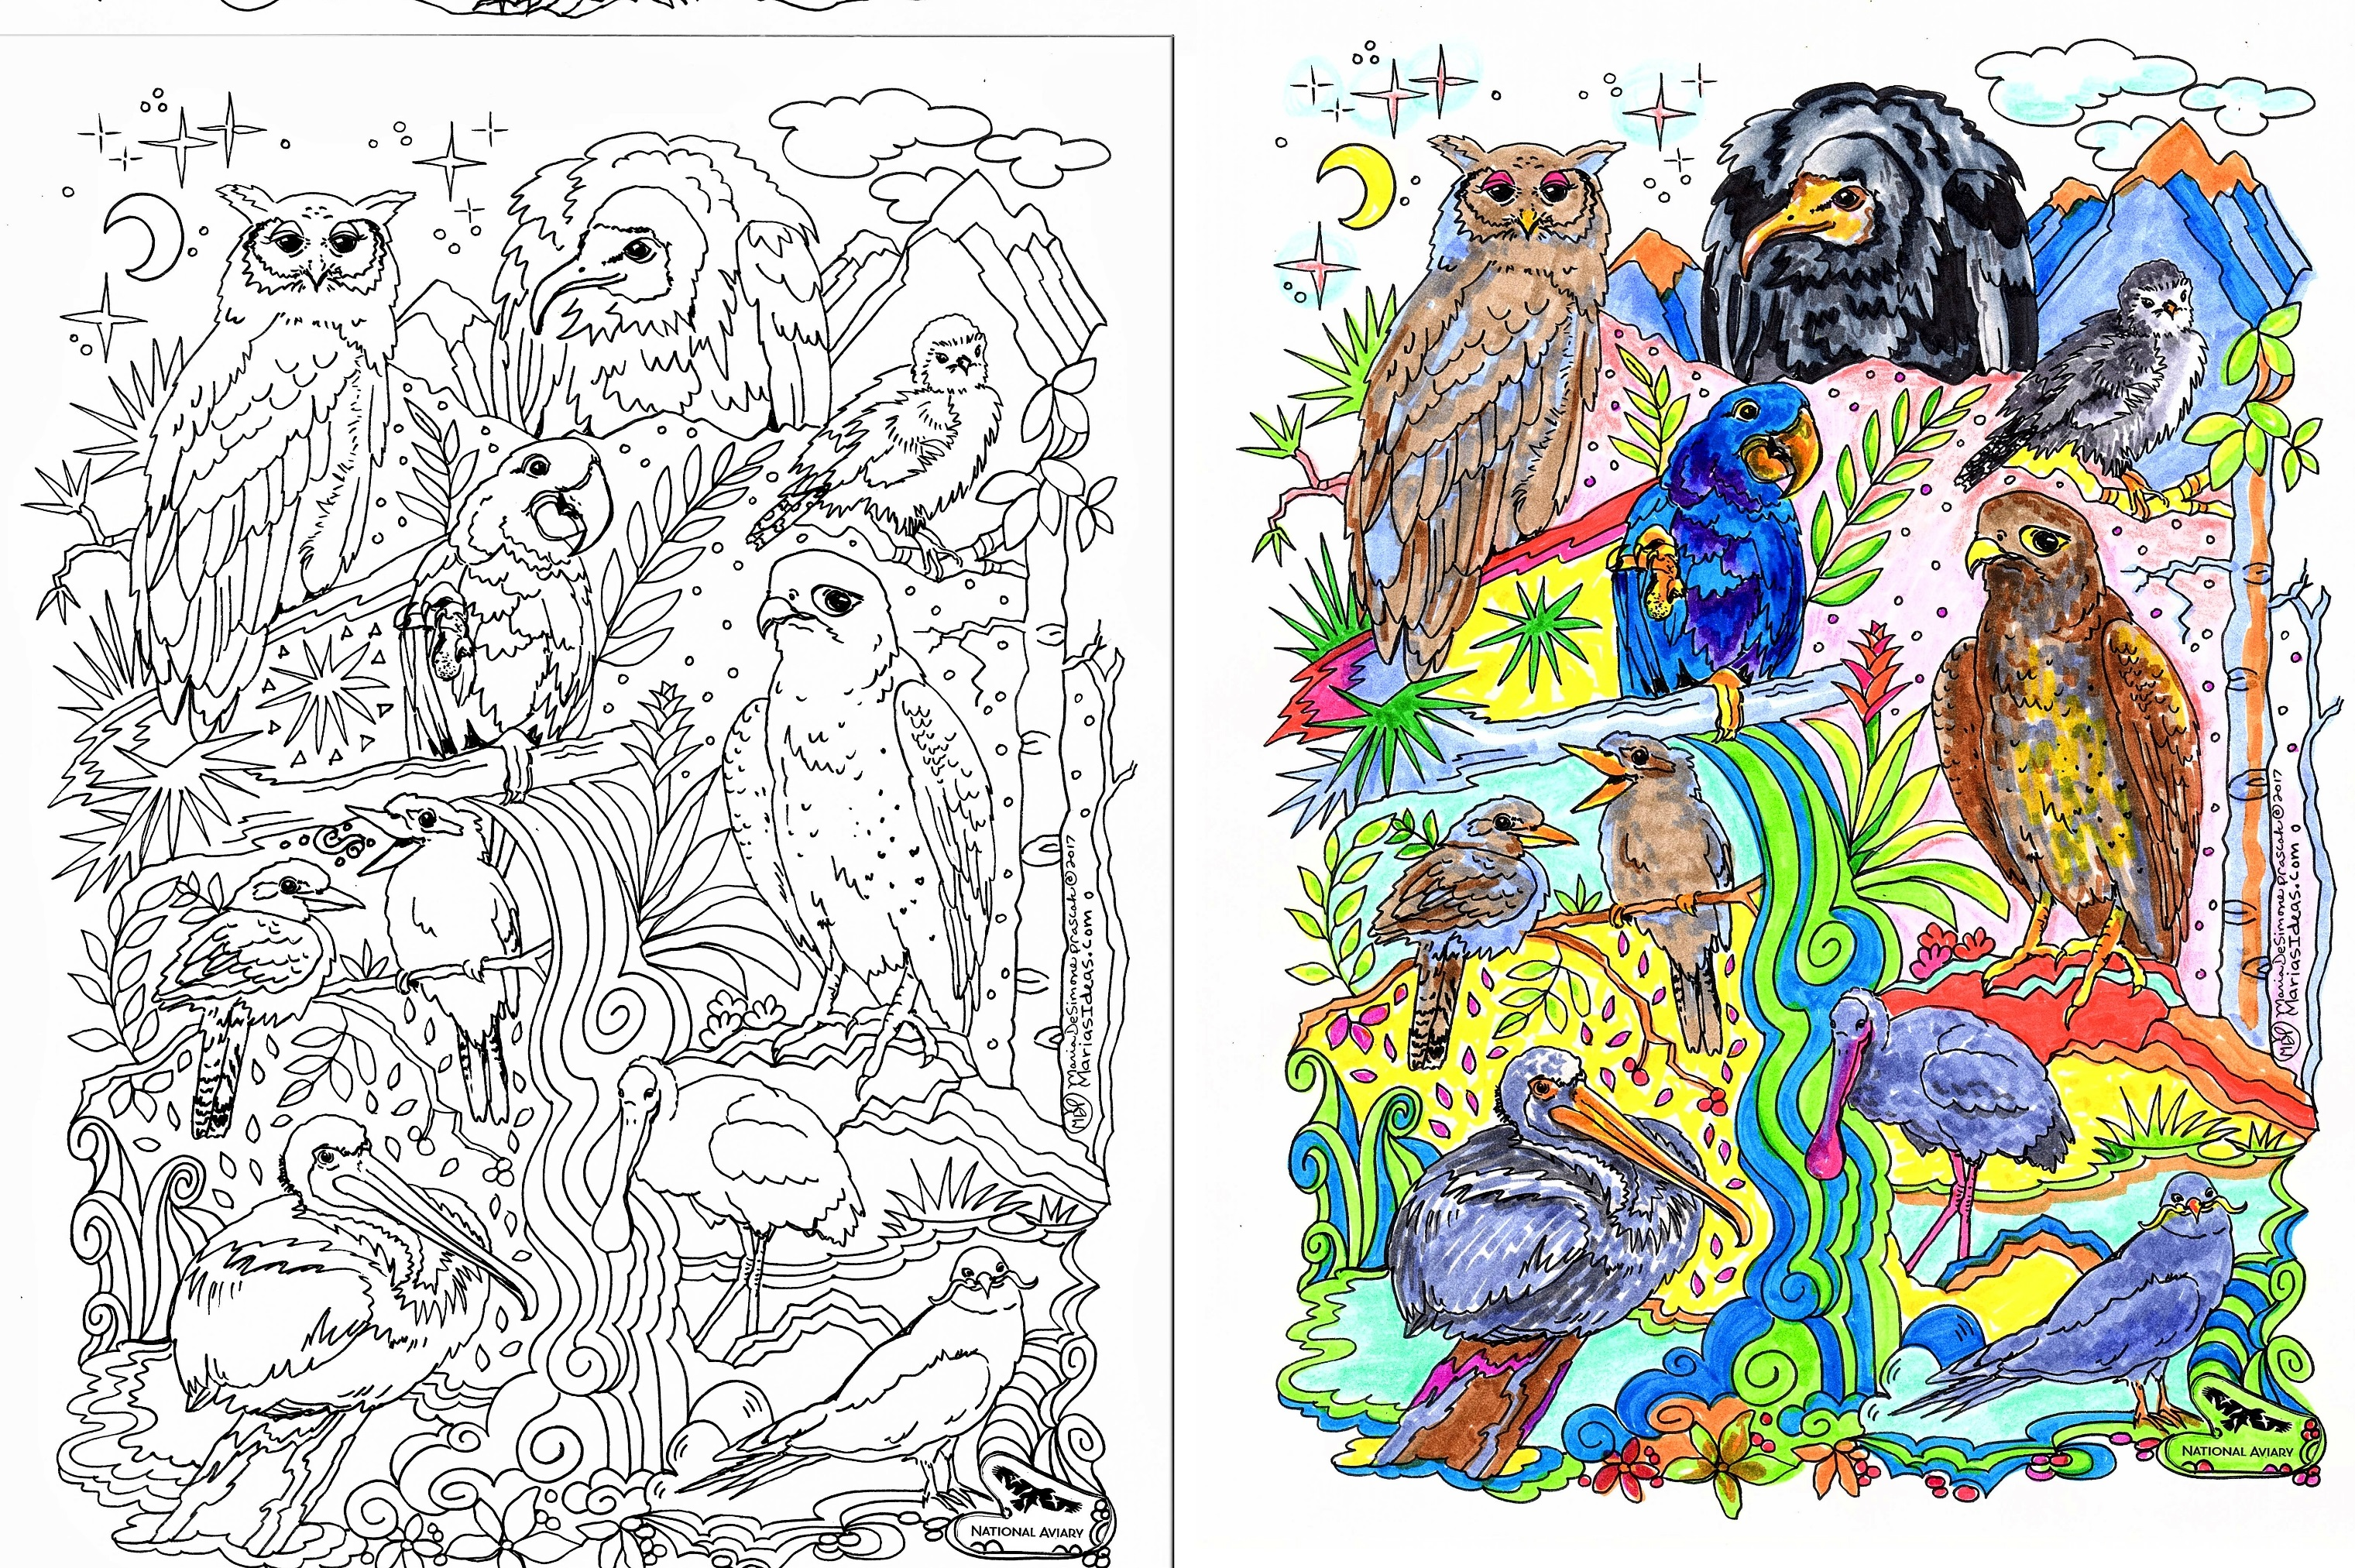 coloring pages, bird color page, national aviary